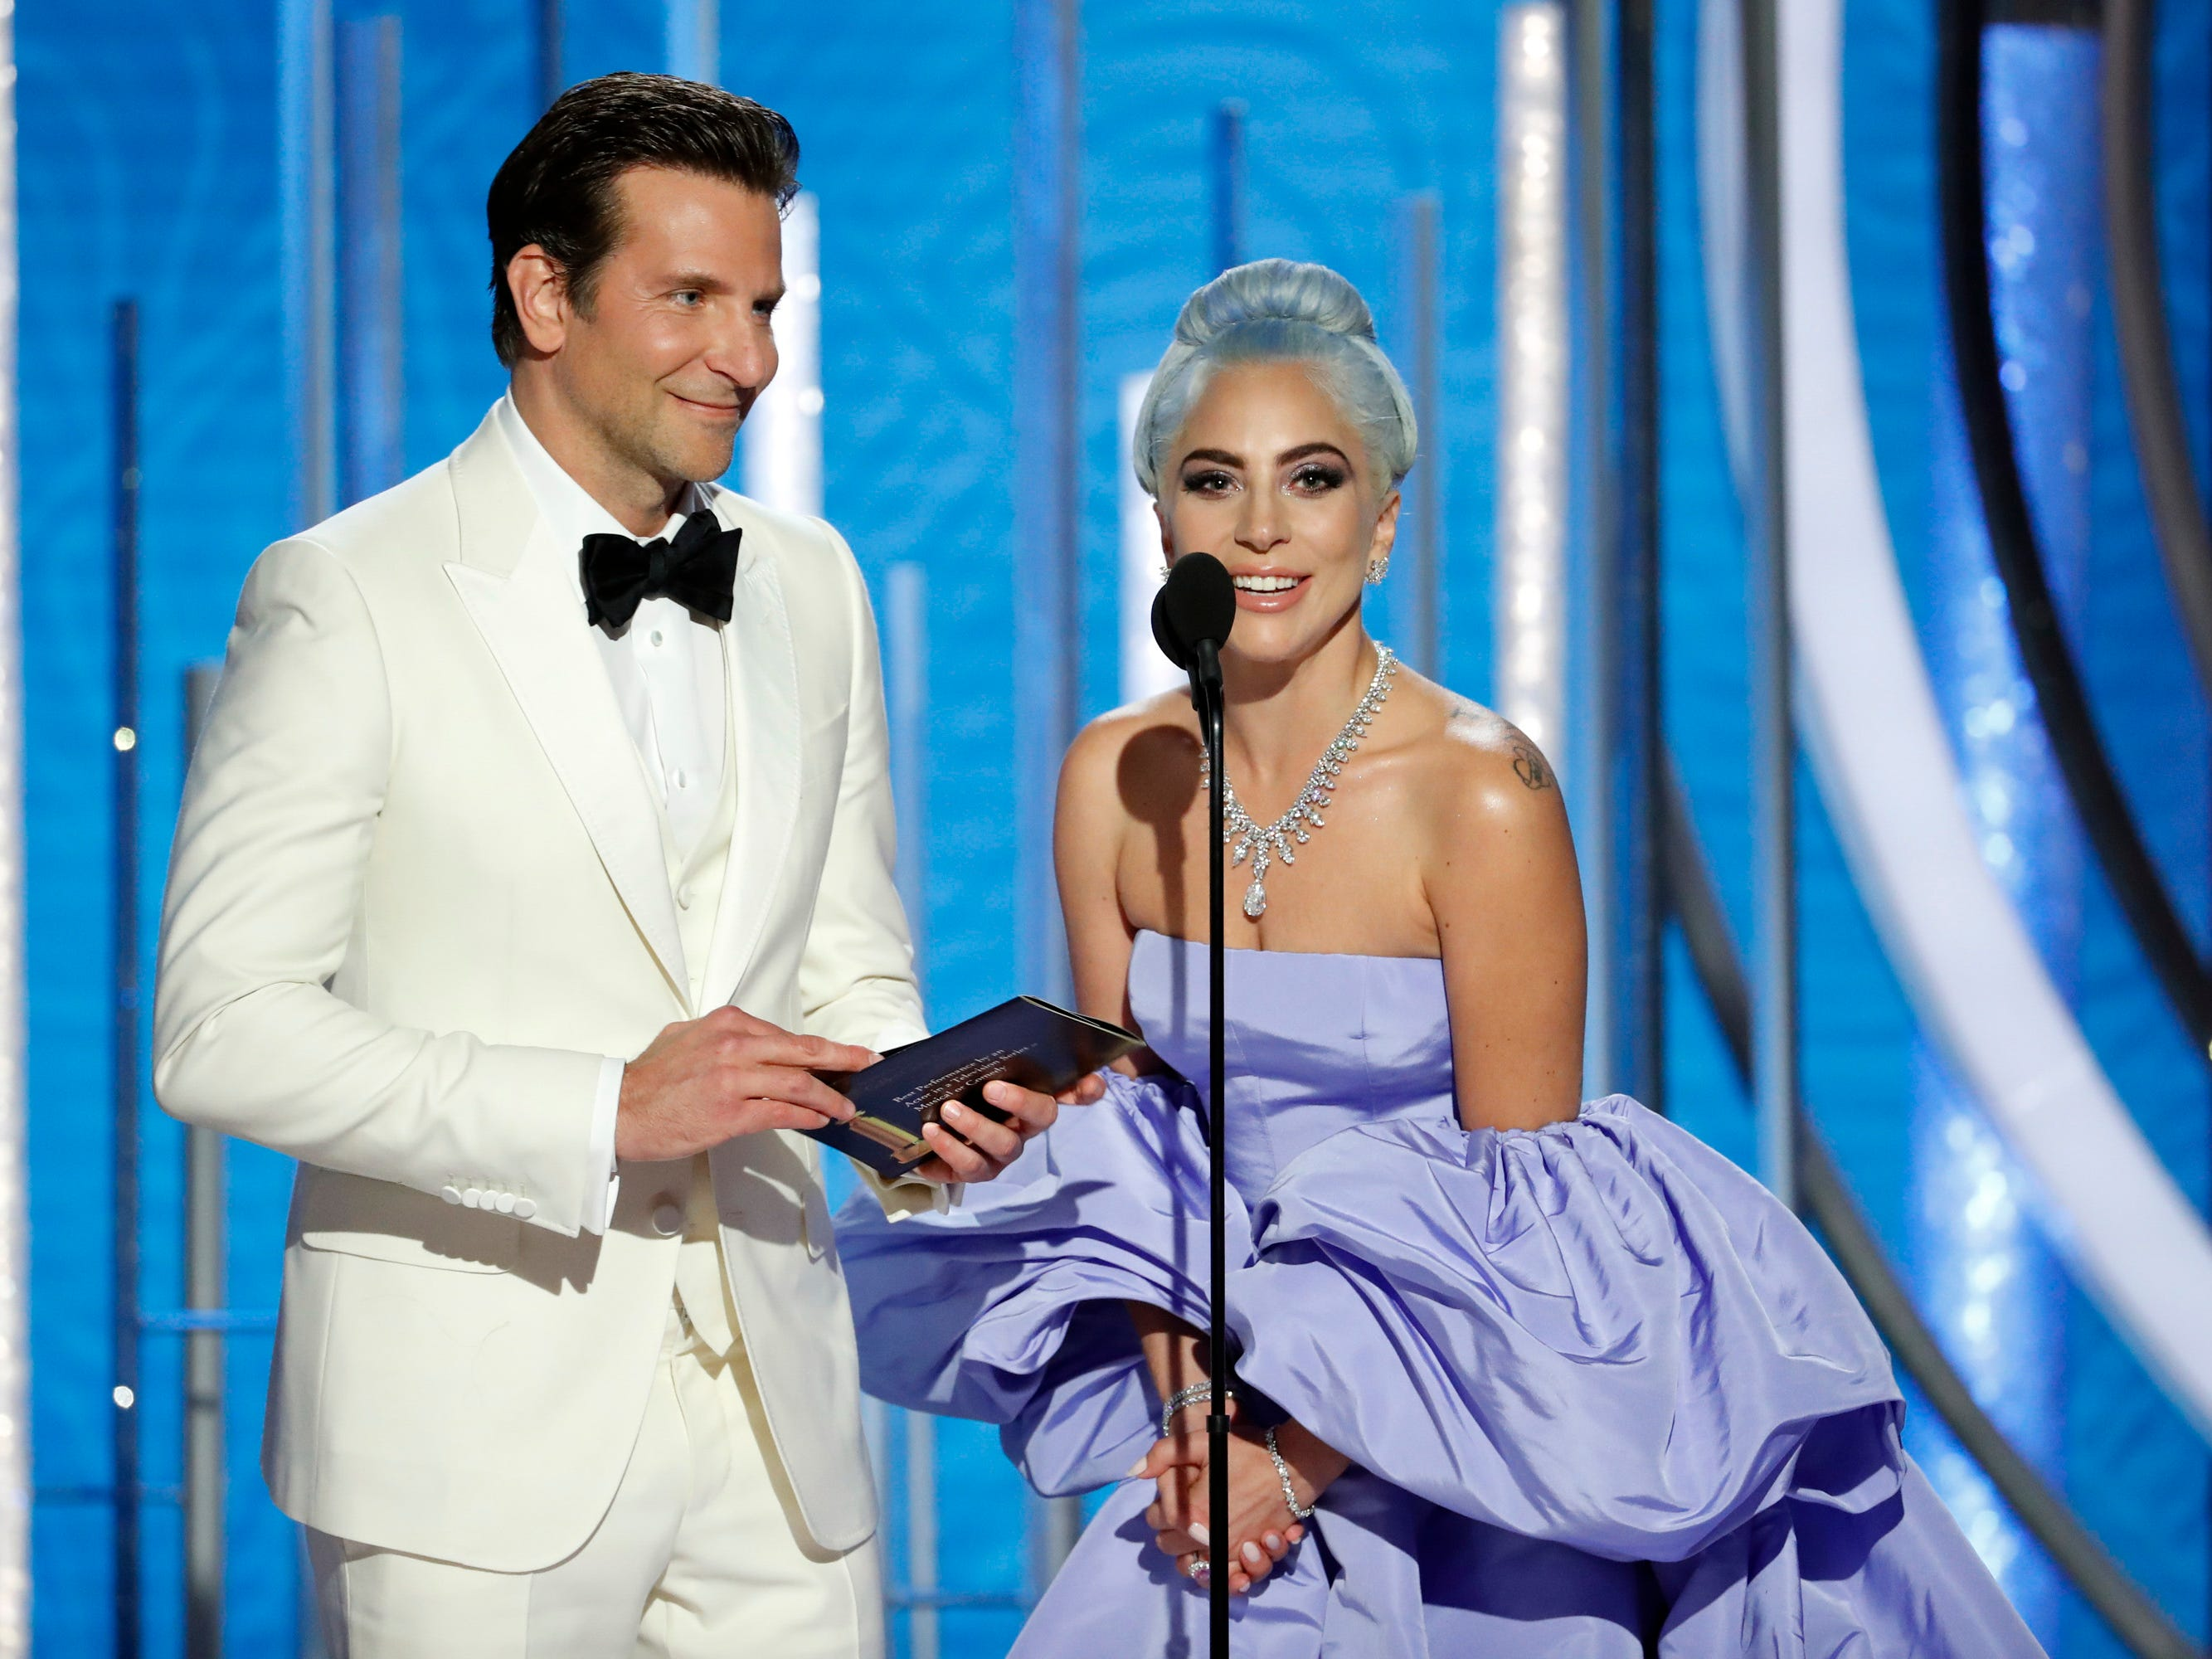 Bradley Cooper and Lady Gaga present during the 76th Golden Globe Awards.